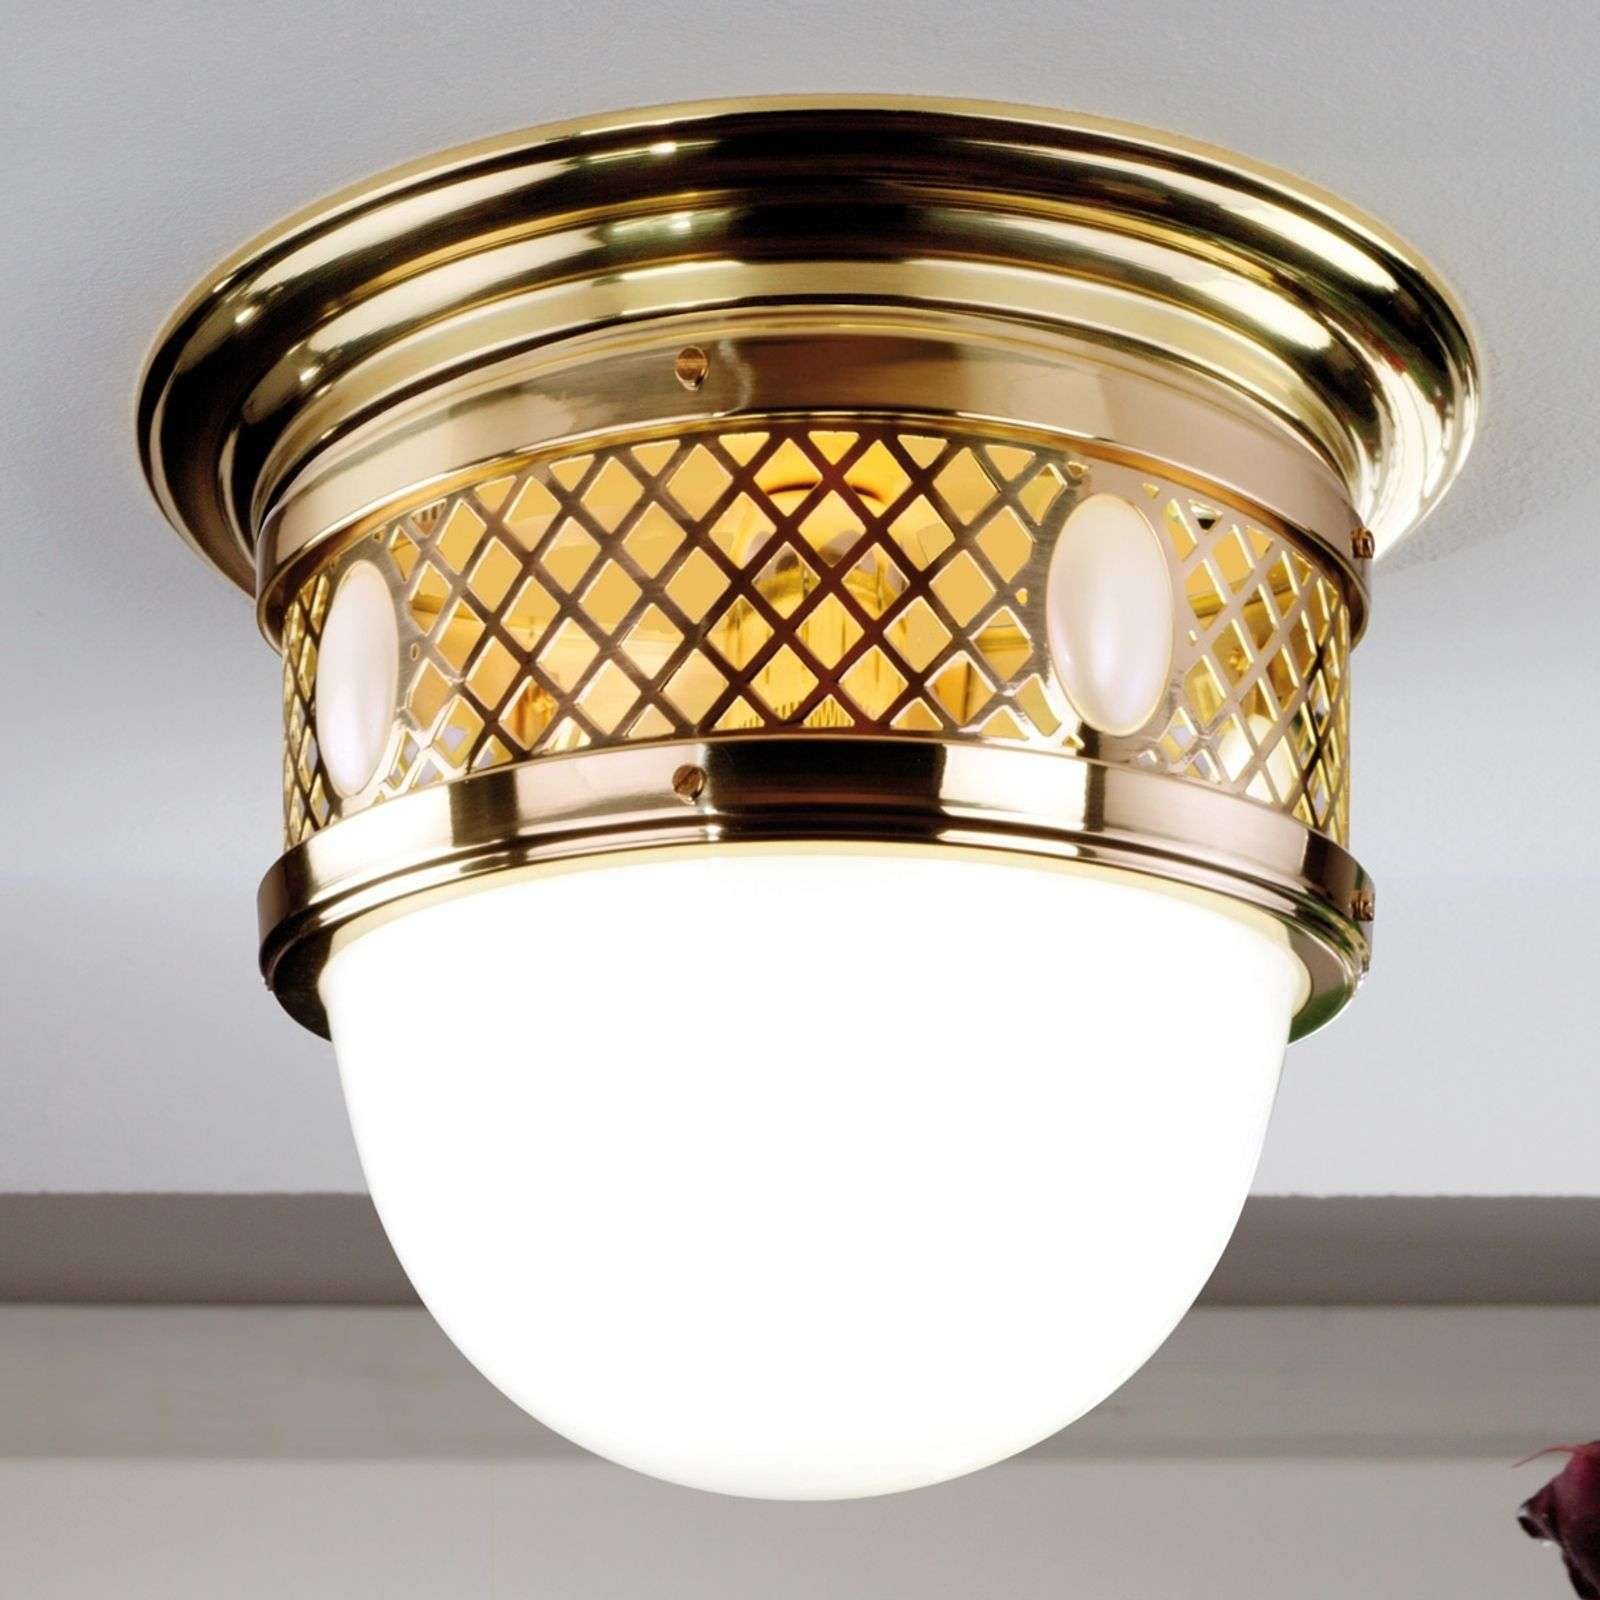 Messing plafondlamp ALT WIEN in Jugendstil-design